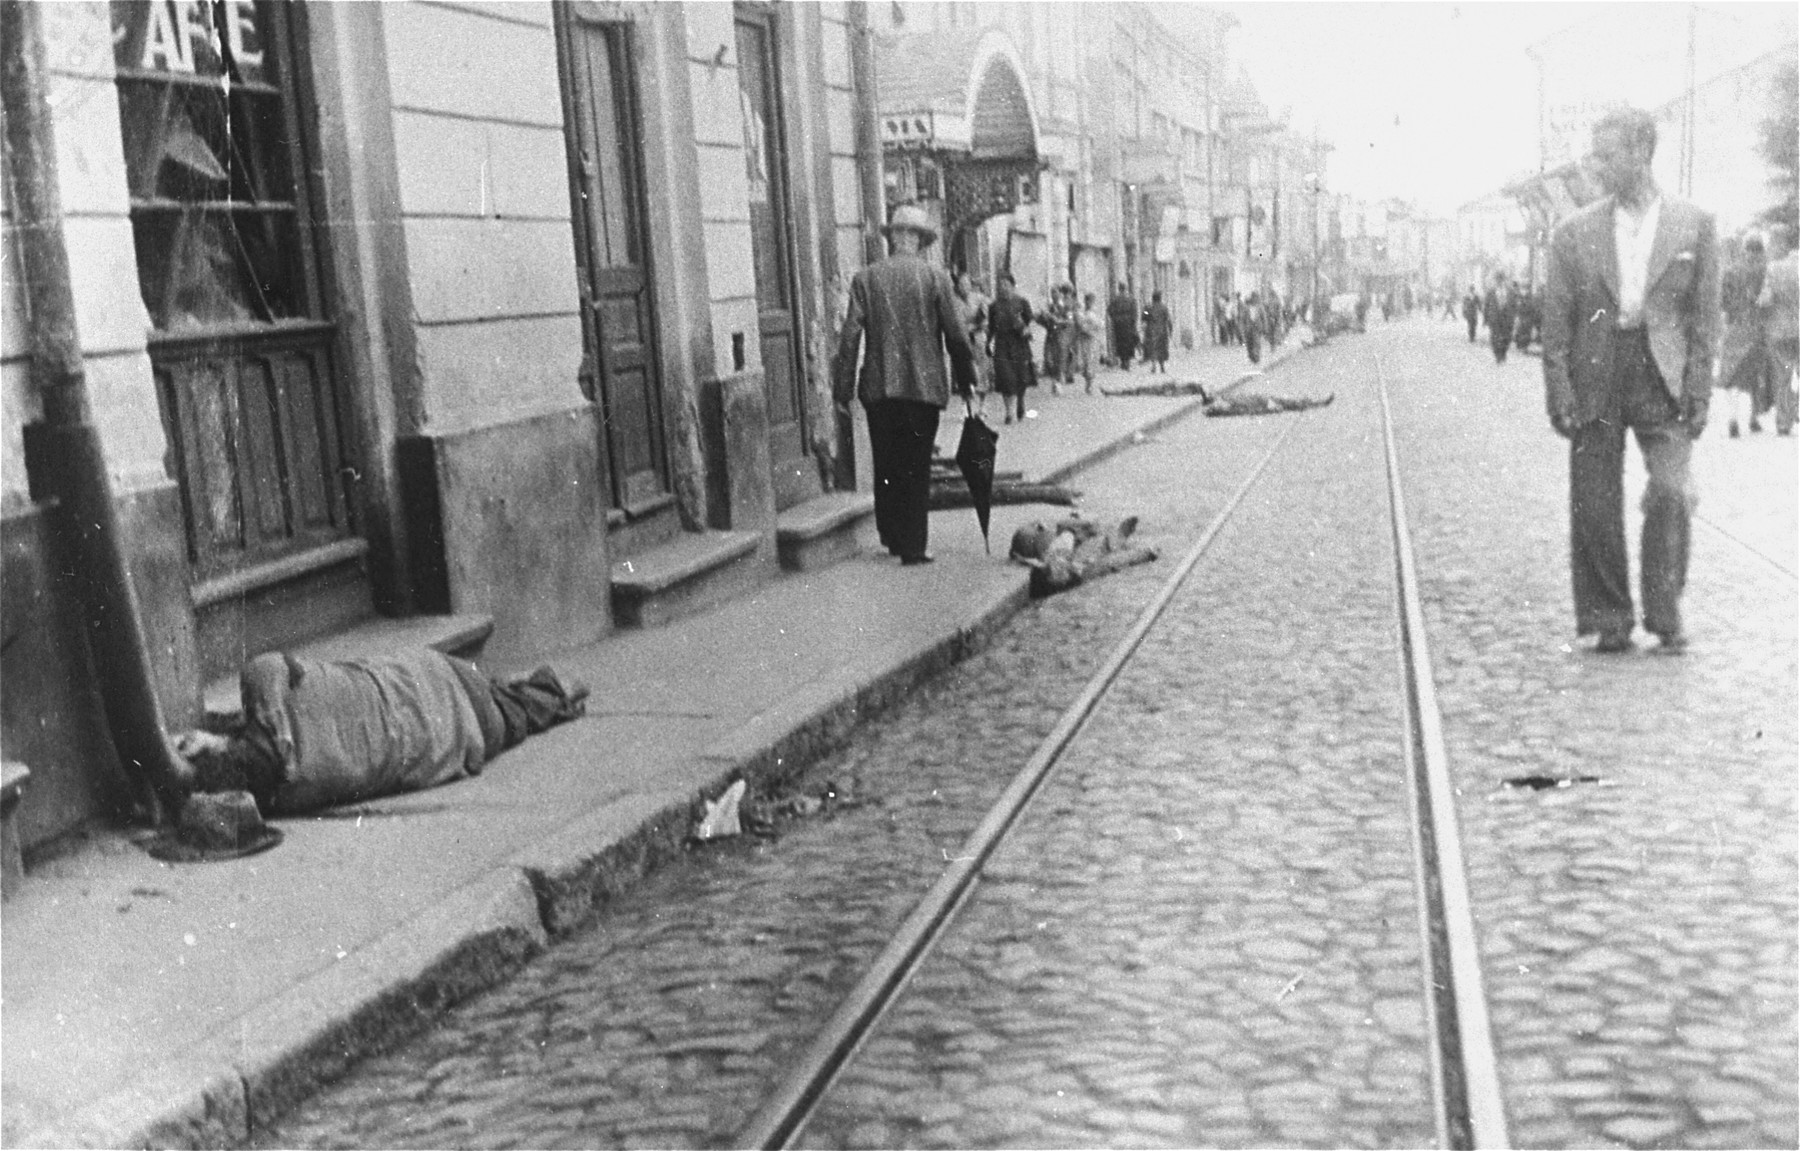 Civilians walk along Cuza Voda Street in central Iasi, near the Cinema Sidoli, past the bodies of Jews killed by Romanian soldiers and civilians during the Iasi pogrom.